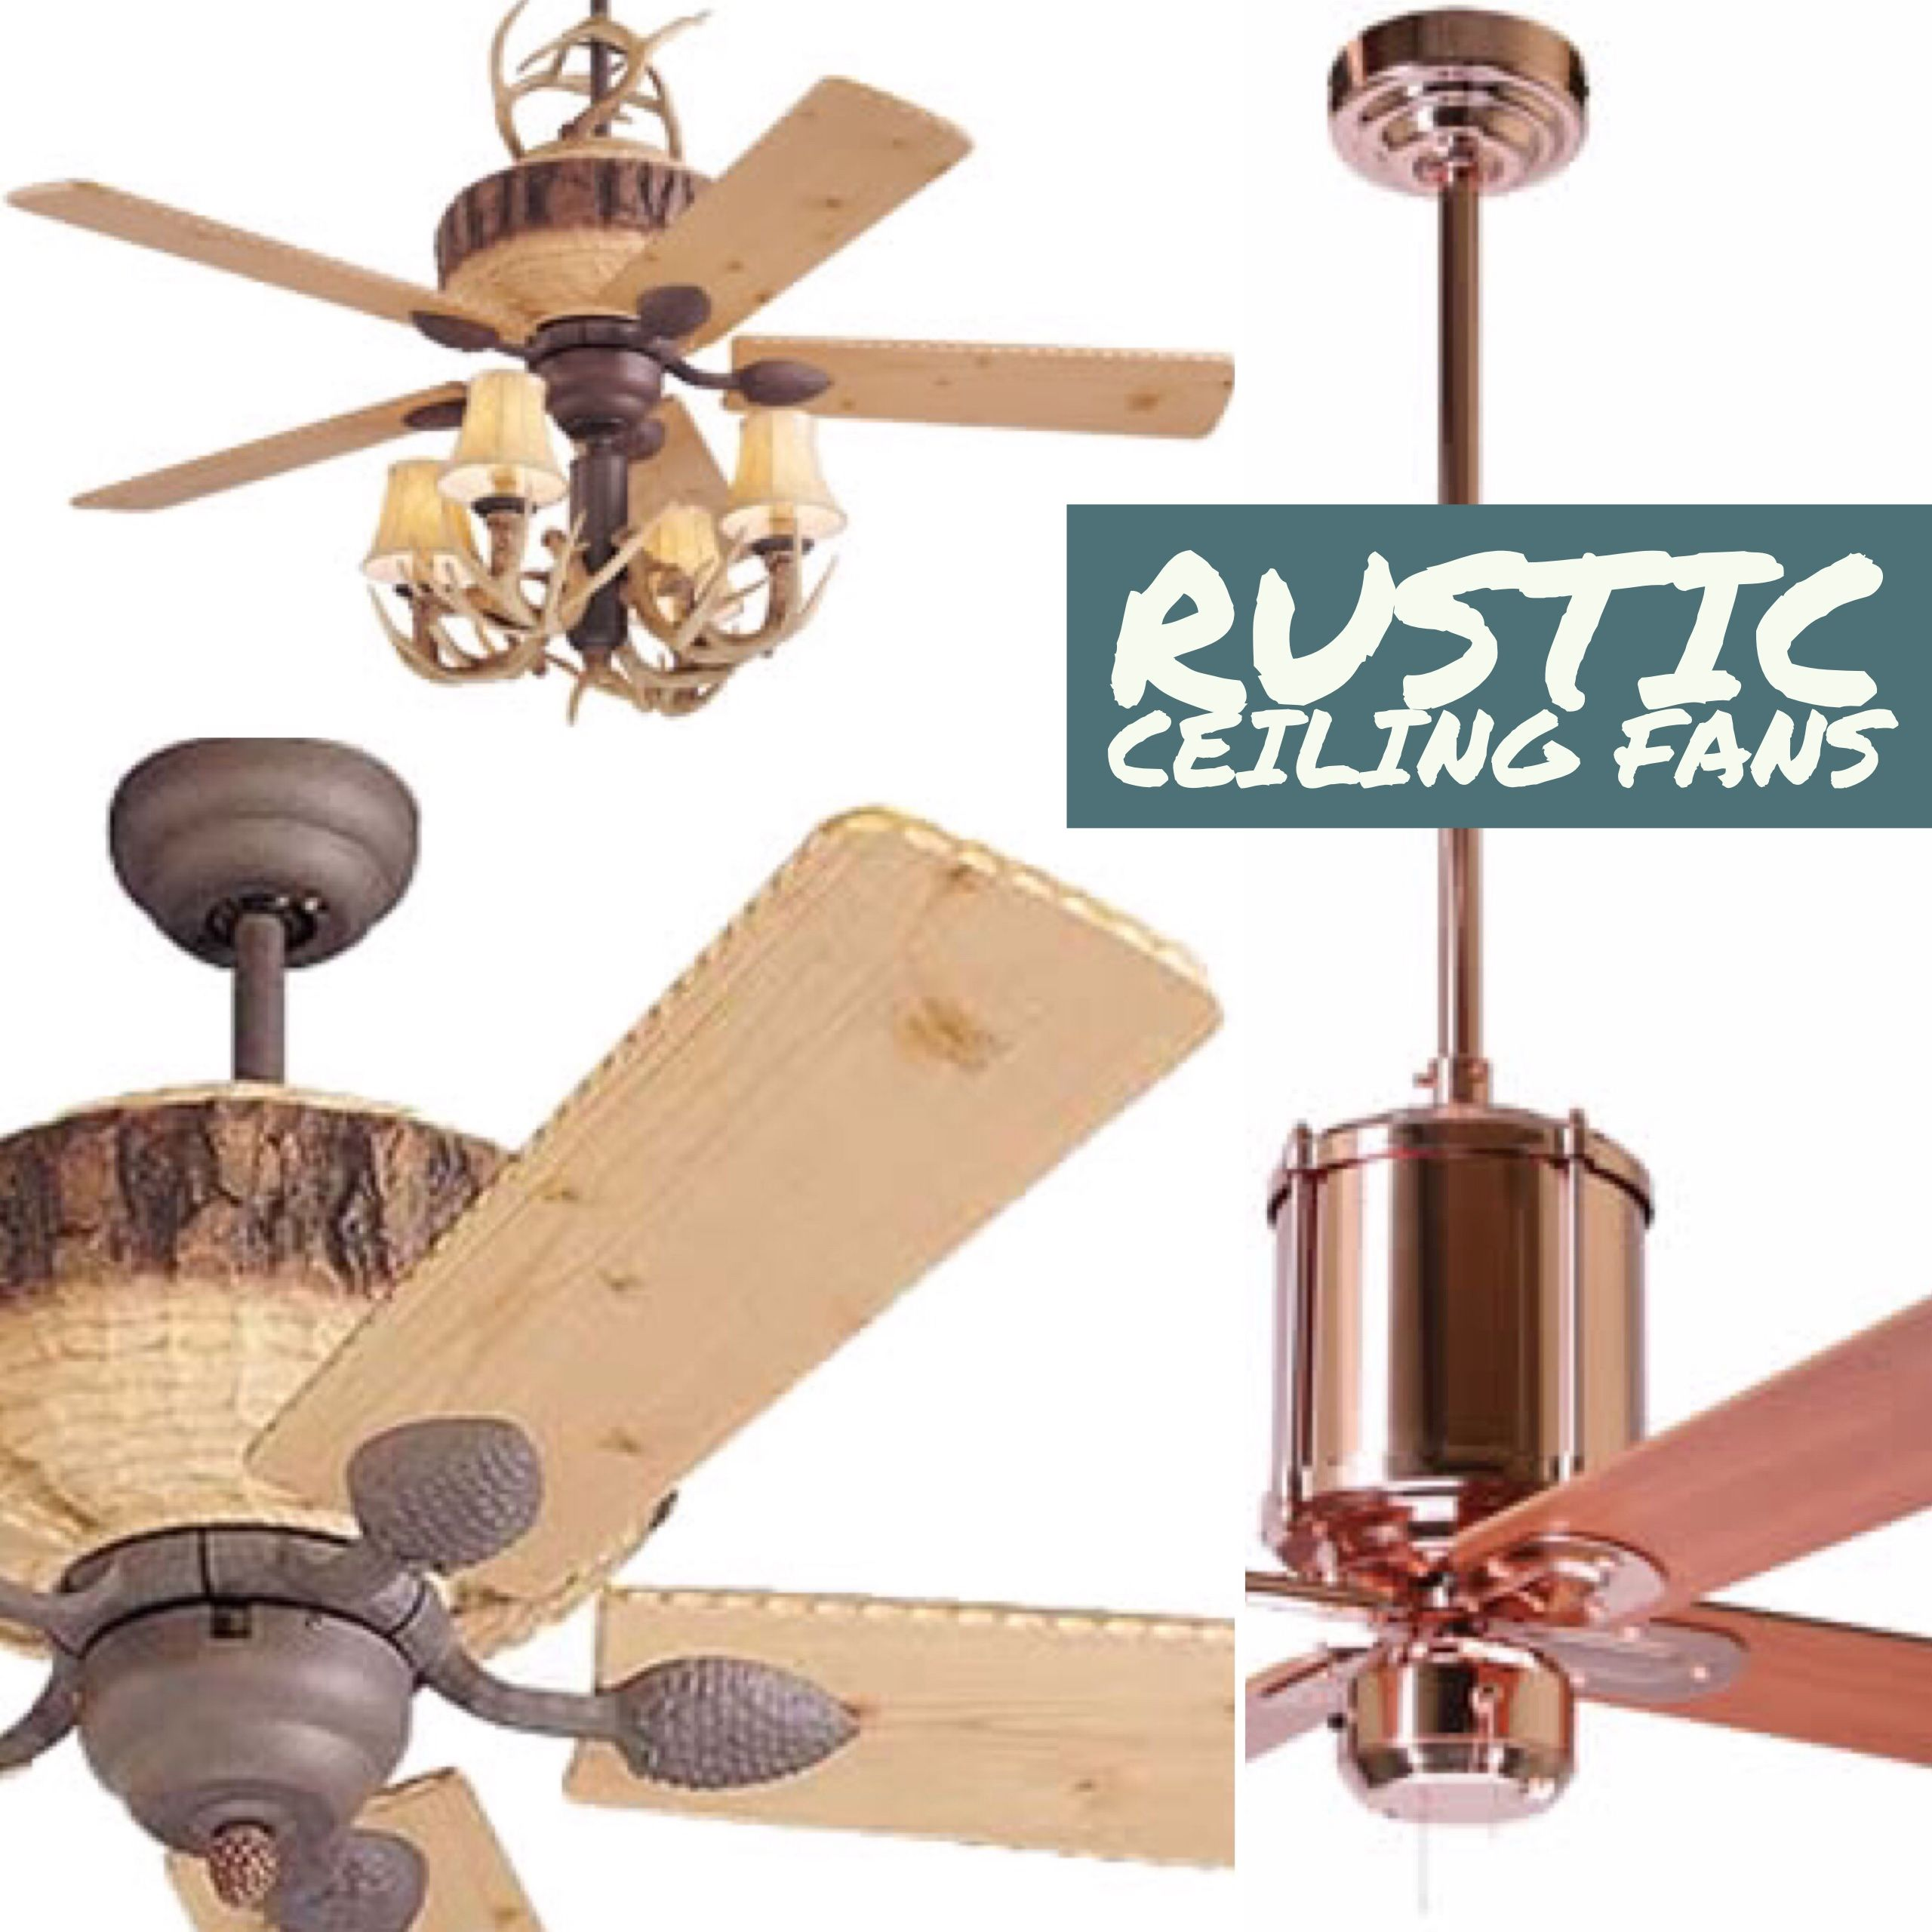 Rustic Ceiling Fans These Rustic Style Ceiling Coordinate With Your Cabin Style Interior Or Add An In Rustic Ceiling Fan Ceiling Fan With Light Rustic Ceiling